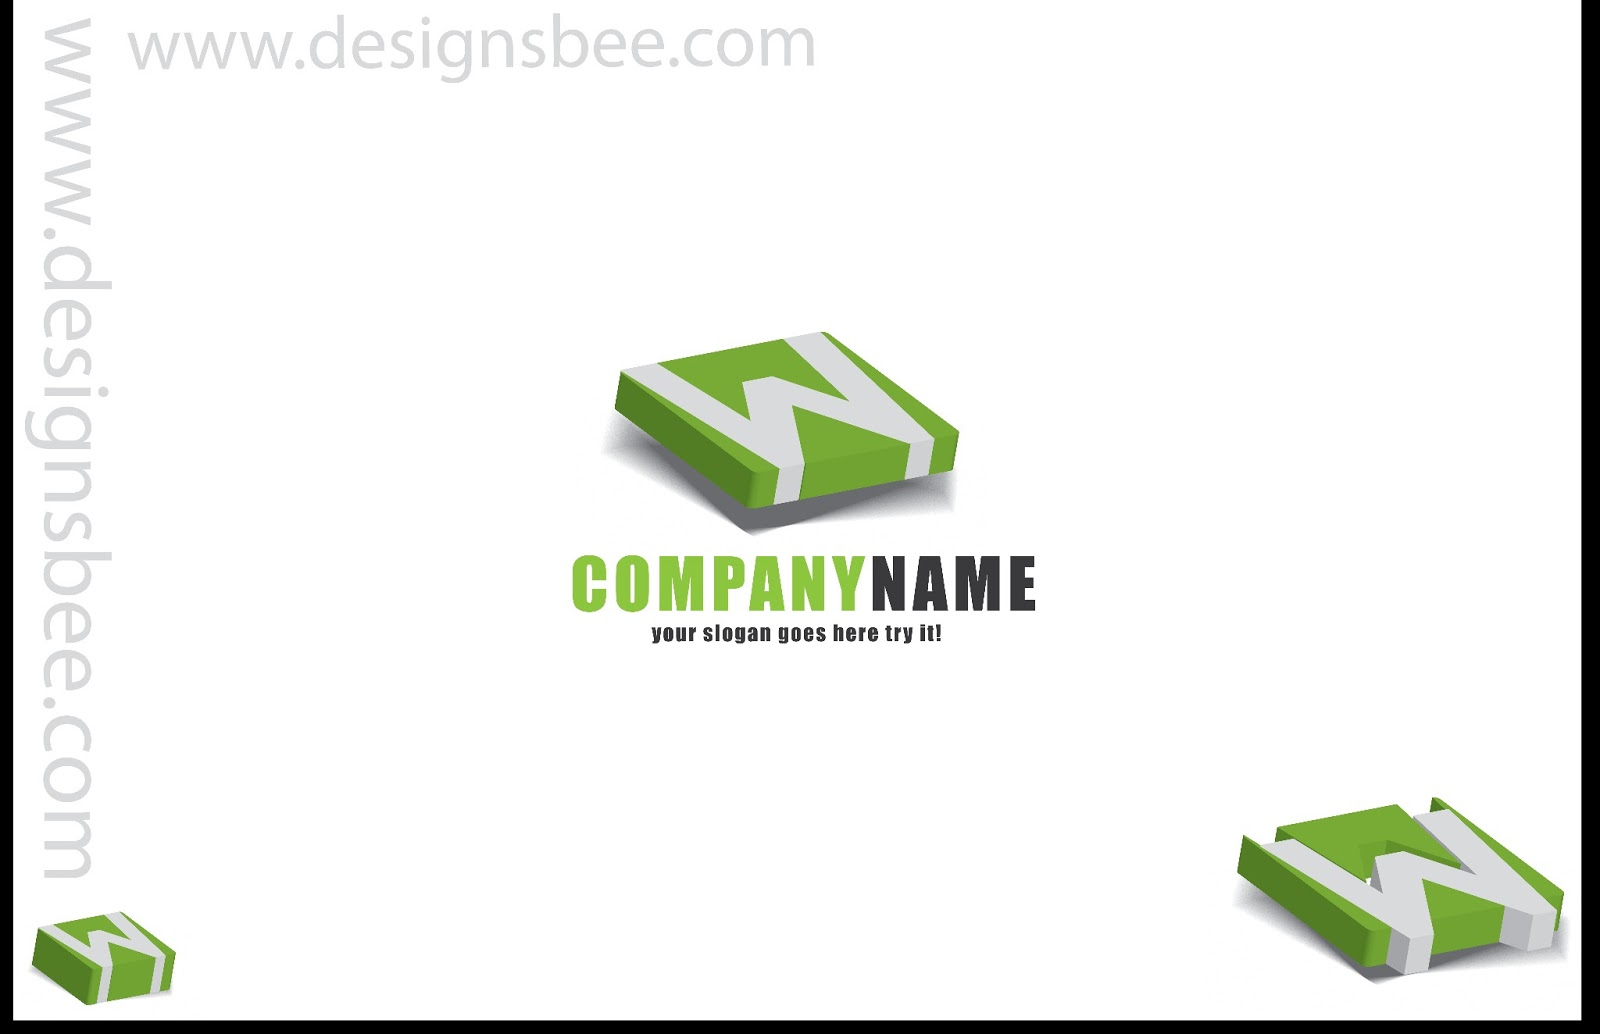 Free Online 3d Design Logo : Joy Studio Design Gallery - Best Design